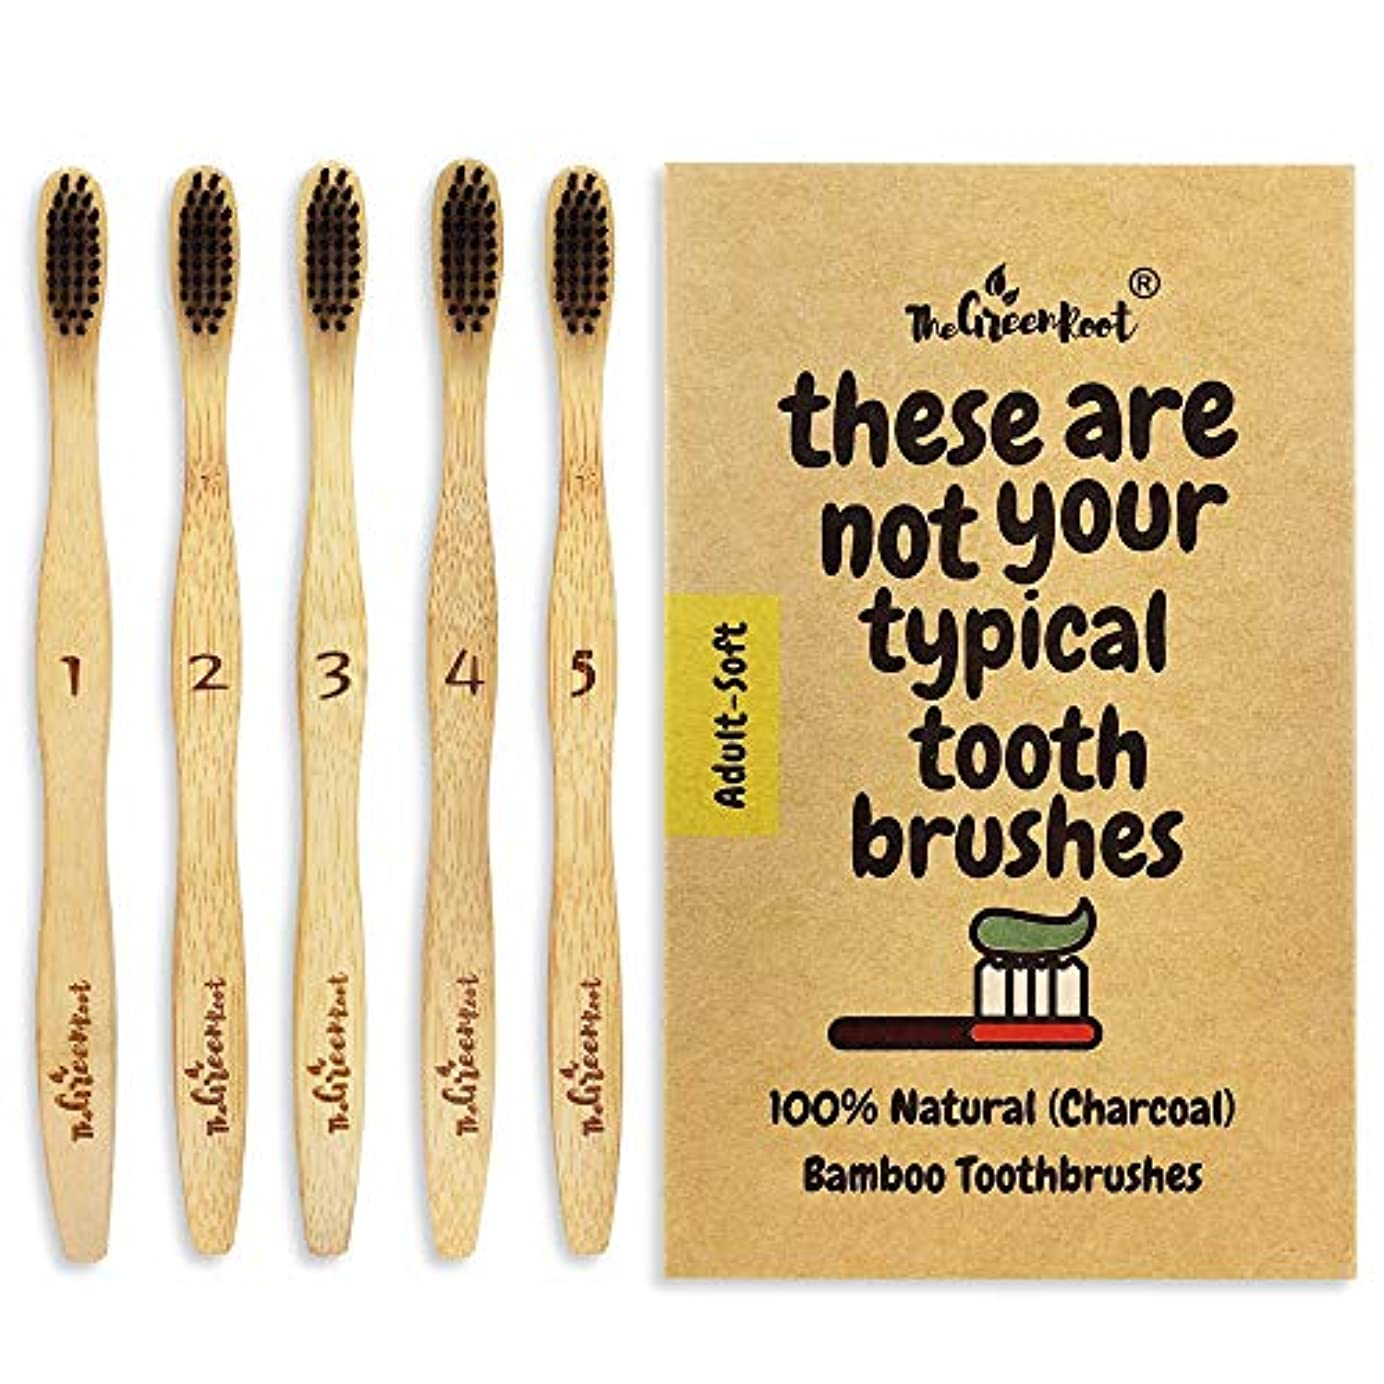 引退する落胆したサイドボードNatural Charcoal Bamboo Toothbrushes (Pack of 5) for Adults with Soft Bio-Based Nylon Bristles - Individually...